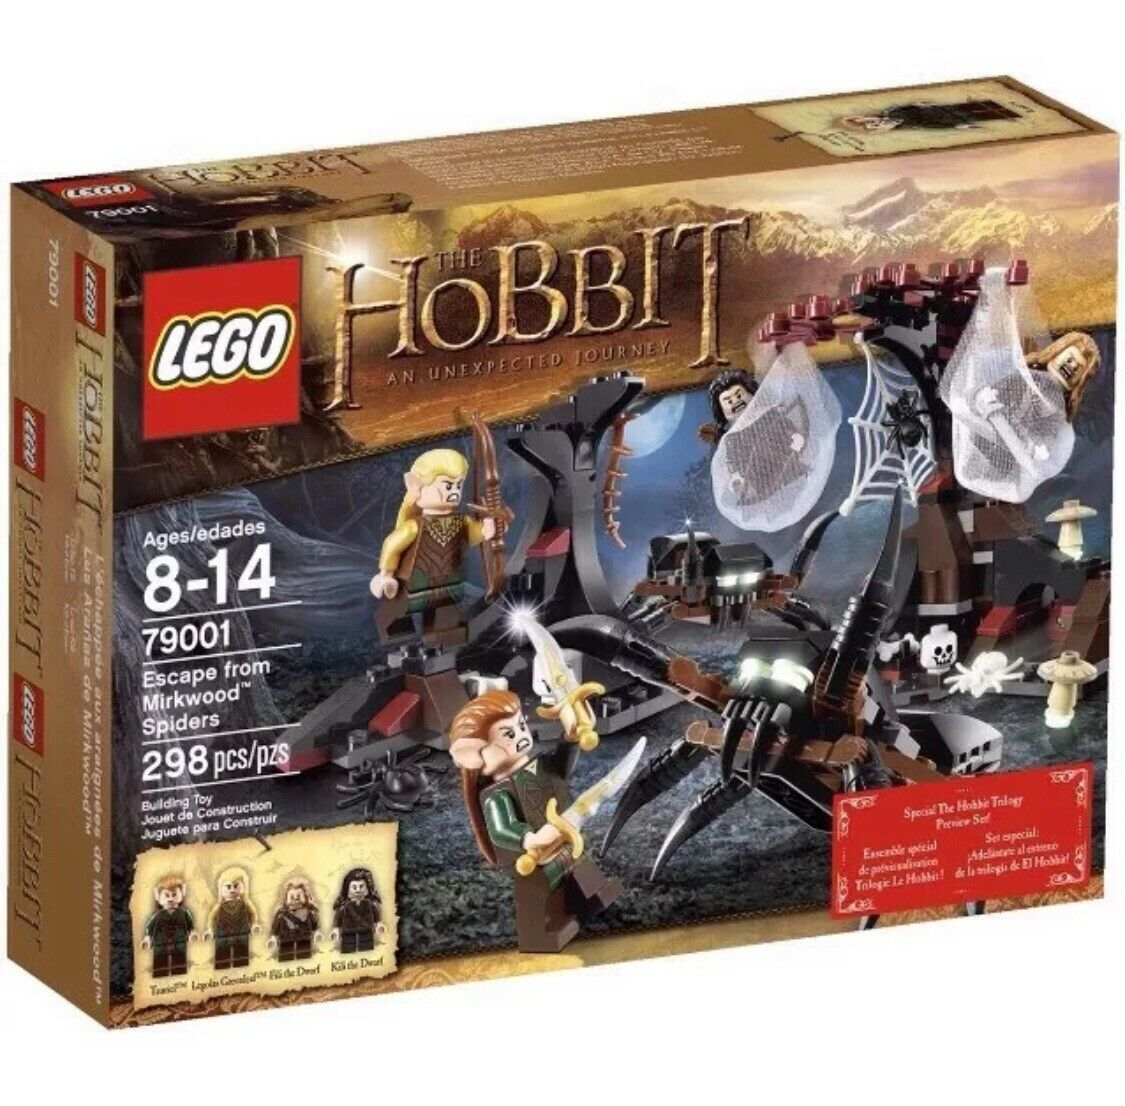 The The The Hobbit - Escape from Mirkwood Spiders Flucht vor den Mirkwood Spinnen 79001 0da2c3